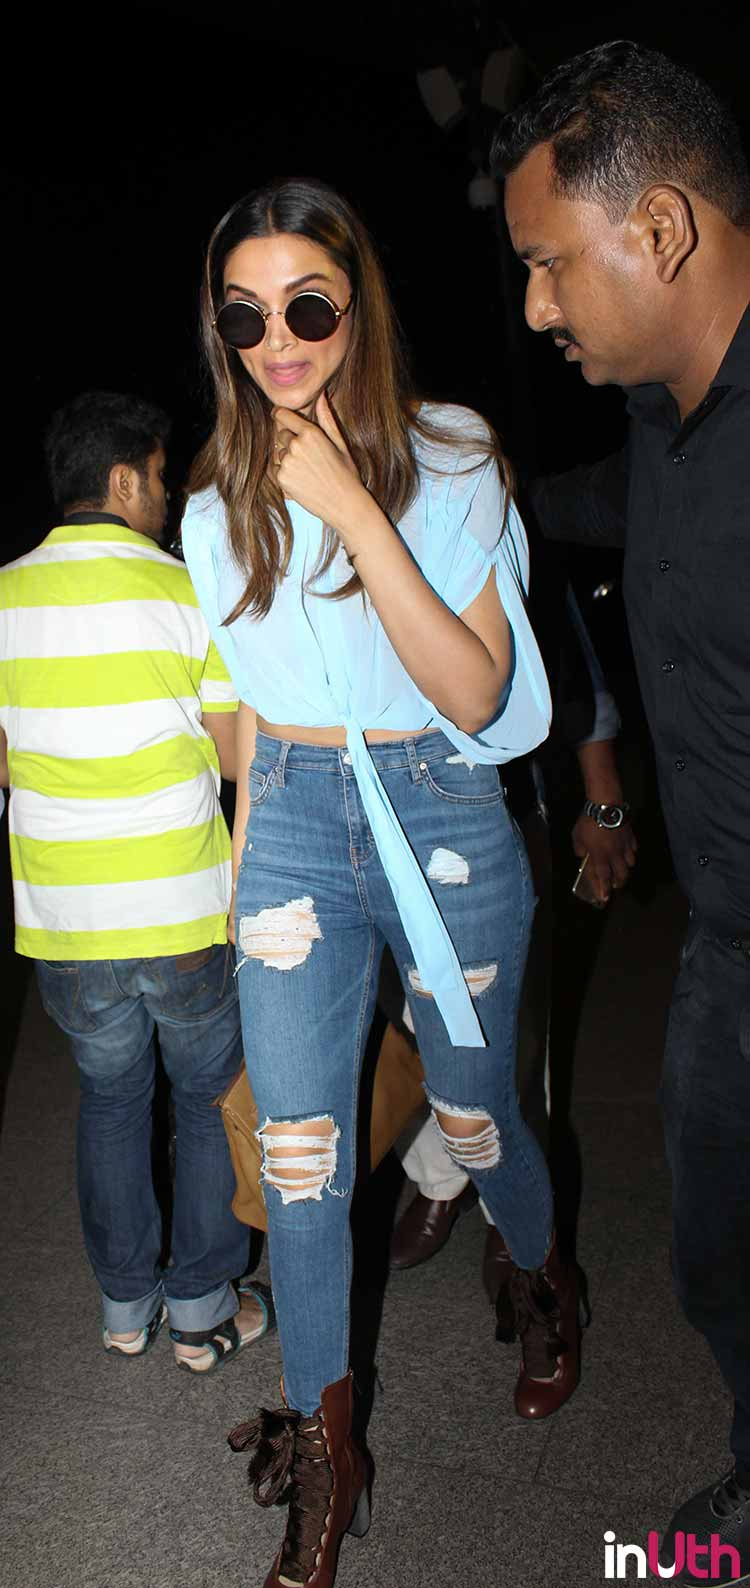 Deepika Padukone's crop top is love